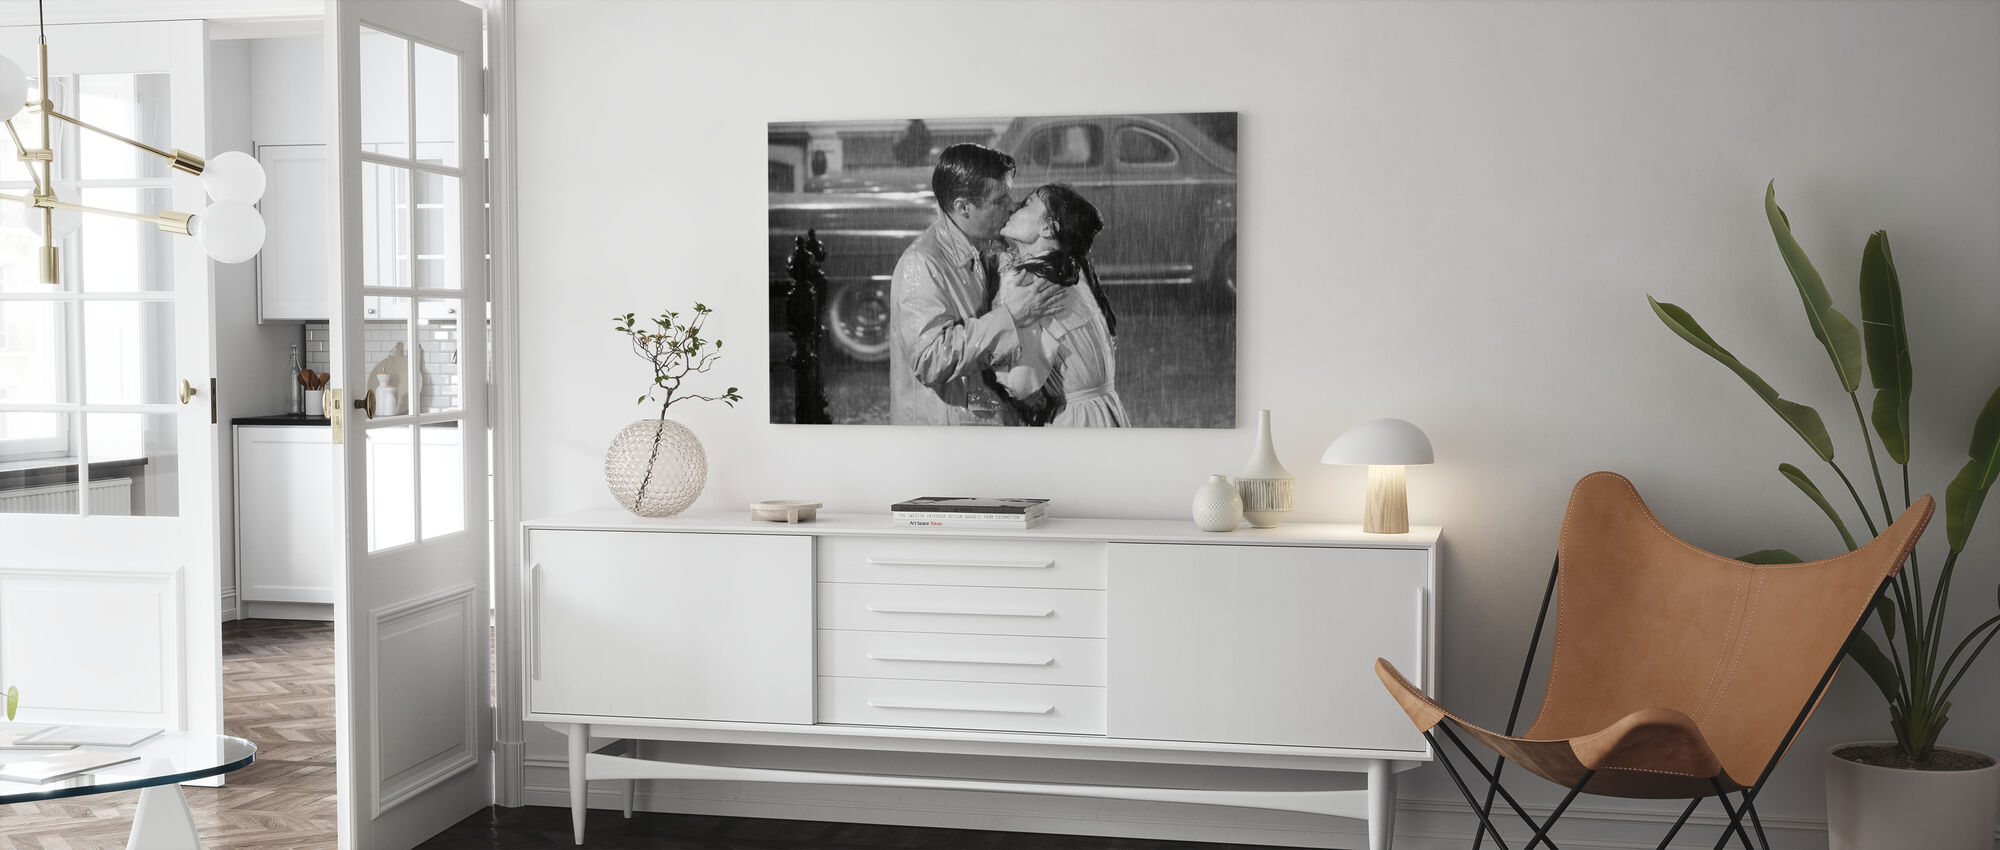 Audrey Hepburn and George Peppard in Breakfast at Tiffanys - Canvas print - Living Room